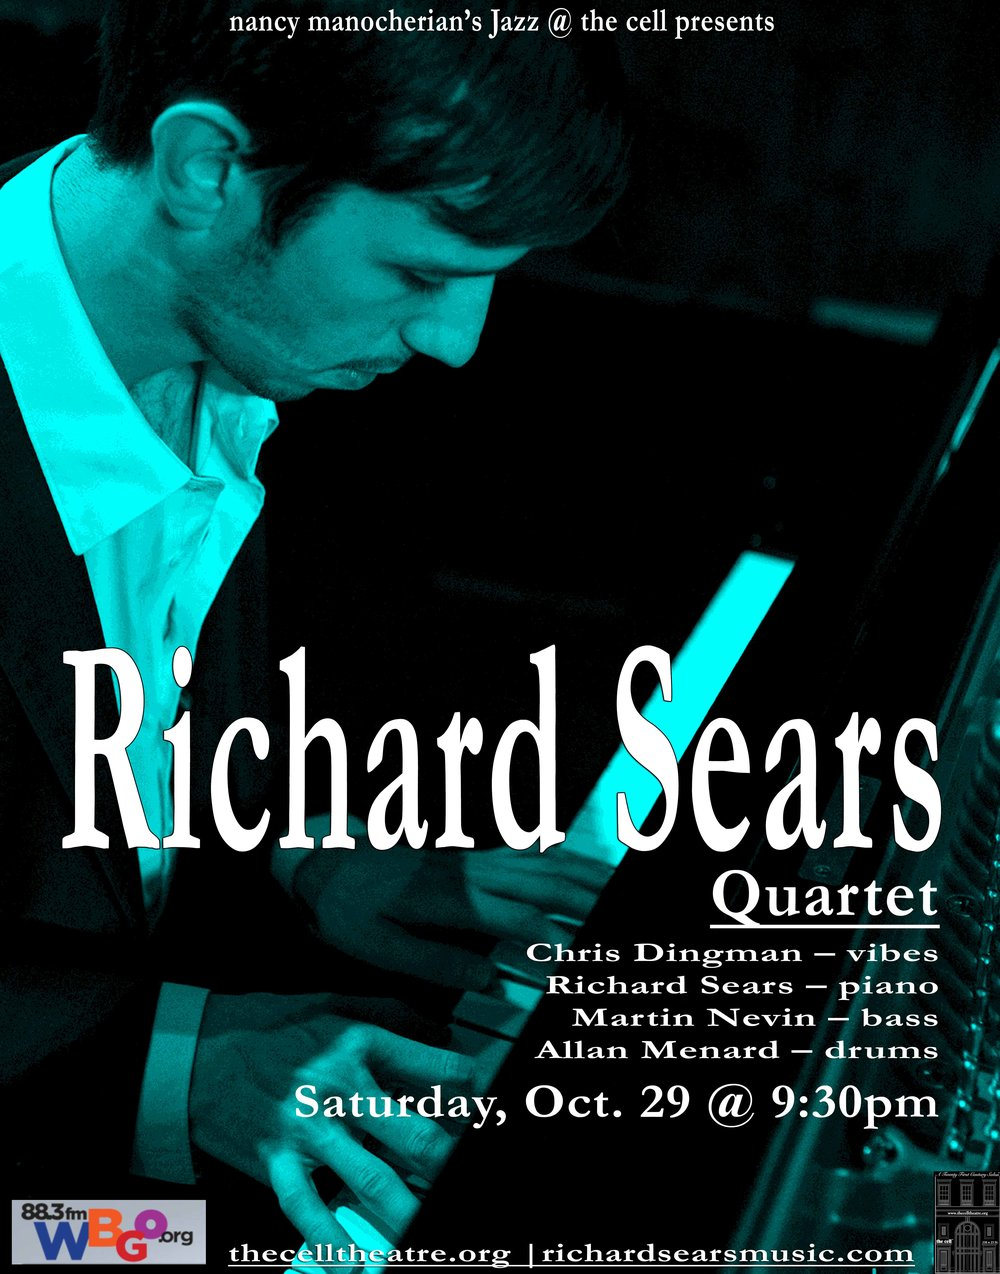 "Brooklyn based pianist, Richard Sears, possesses an original voice as an improvisor and composer. Richard has performed with some of the most important living jazz musicians including Chick Corea, Mark Turner, Joshua Redman, Tootie Heath, and Billy Hart. His composition has been recognized by grants from the Aaron Copland Fund and the Los Angeles Jazz Society. In fall 2015, Richard released his latest trio recording, ""Skyline"", on Fresh Sound Records.  - ""exceptional young trio led by Los Gatos-raised pianist Richard Sears dwells in that sweet spot between tradition and discovery. While many of his contemporaries are casting a wide net for influences, Sears and his bandmates are savvy post-bop explorers dedicated to expanding the jazz idiom from within."" – Andrew Gilbert writes for the  San Francisco Chronicle and the San Jose Mercury - ""Sears' pianistic concept is fully realized, with an austere, Brahms-ian chordal sense and clarity of purpose in his improvised melodies. His confidence boosted by the implicit affirmation of inclusion in bands by Billy Hart, Mark Turner, Ben Street, Tootie Heath, and Roy McCurdy, Sears has successfully migrated to Brooklyn and recorded his debut, Skyline, on the well-respected label Fresh Sound Records.""– Gary Fukushima 